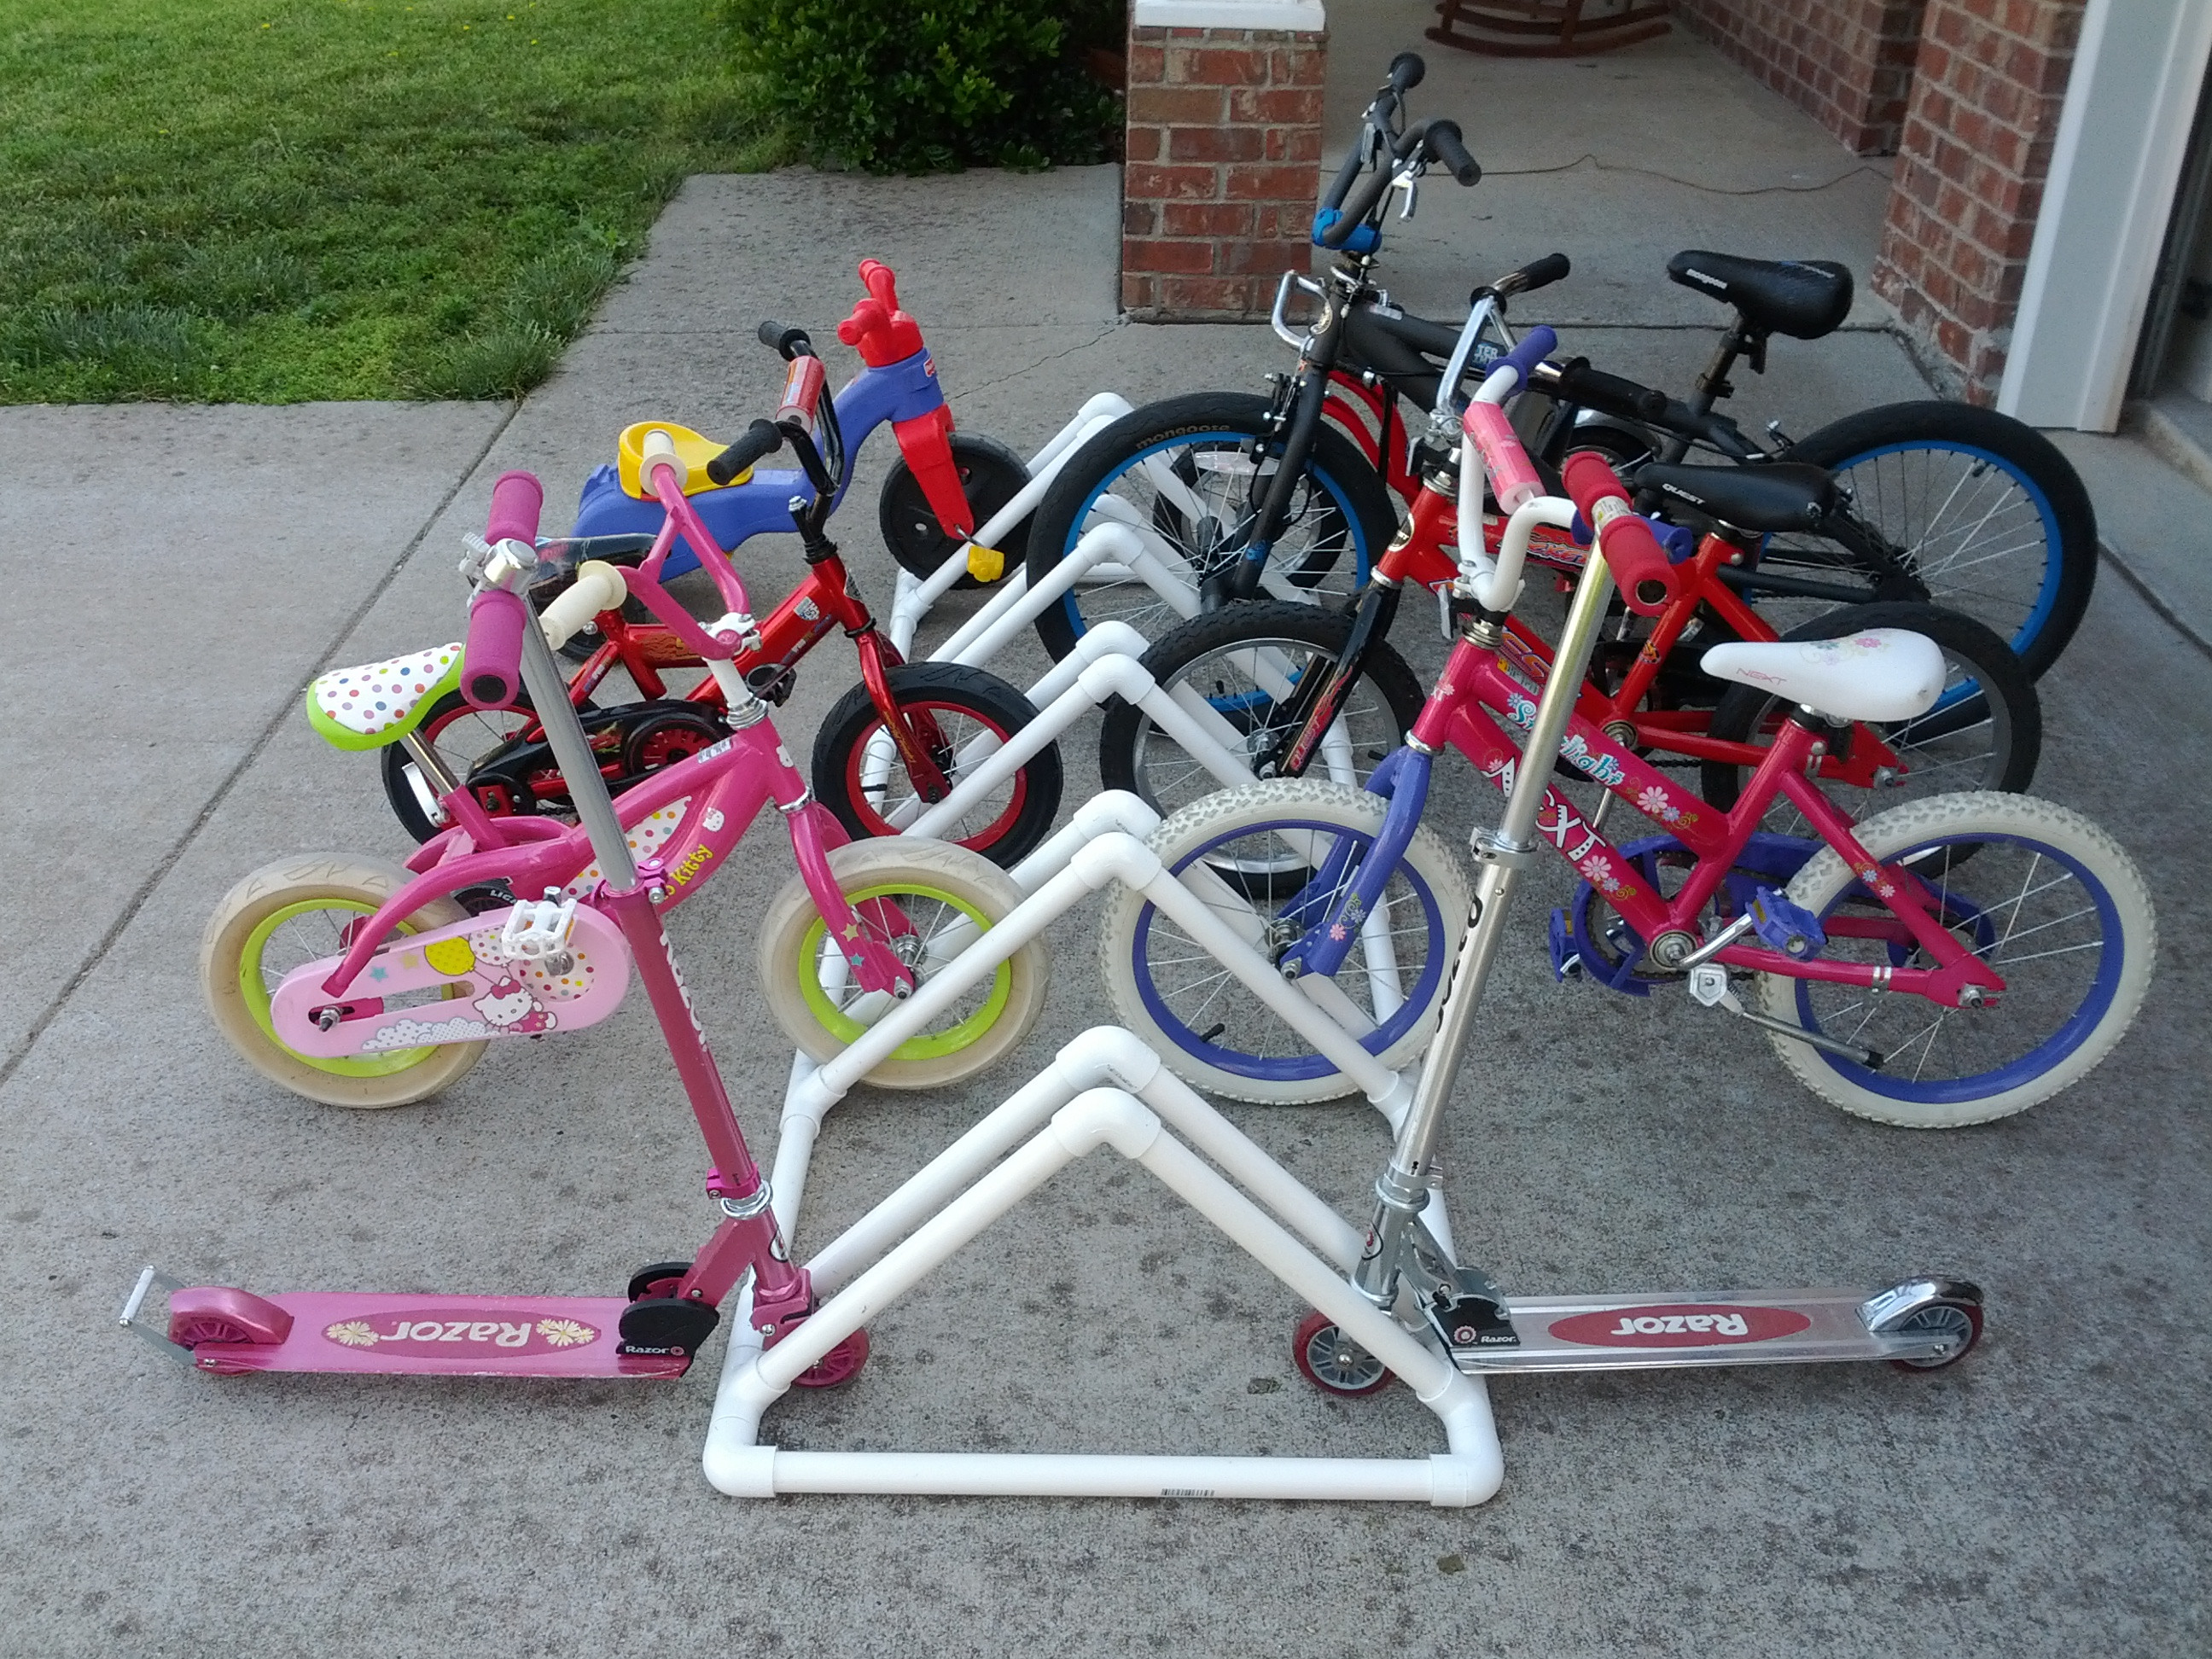 Best ideas about DIY Bicycle Rack . Save or Pin Project 4 – DIY Bike Rack Made from PVC Pipe Now.